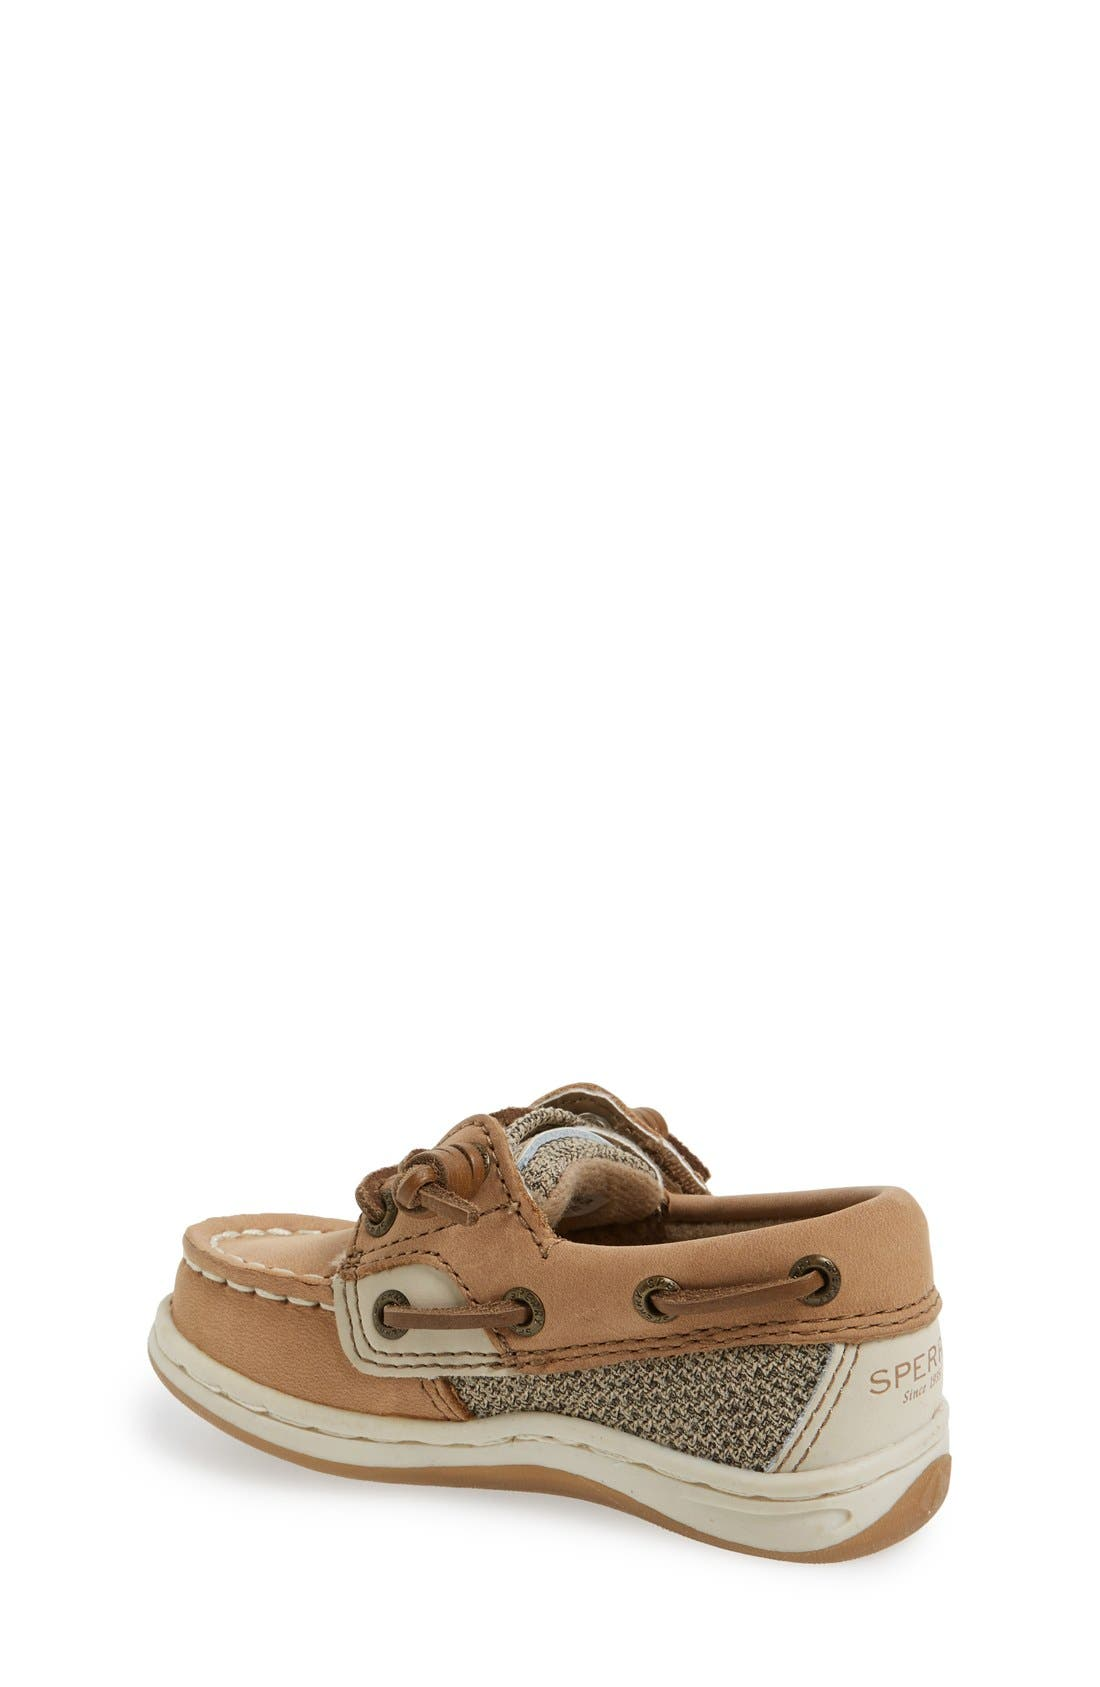 'Songfish' Boat Shoe,                             Alternate thumbnail 2, color,                             Linen/ Oat Leather